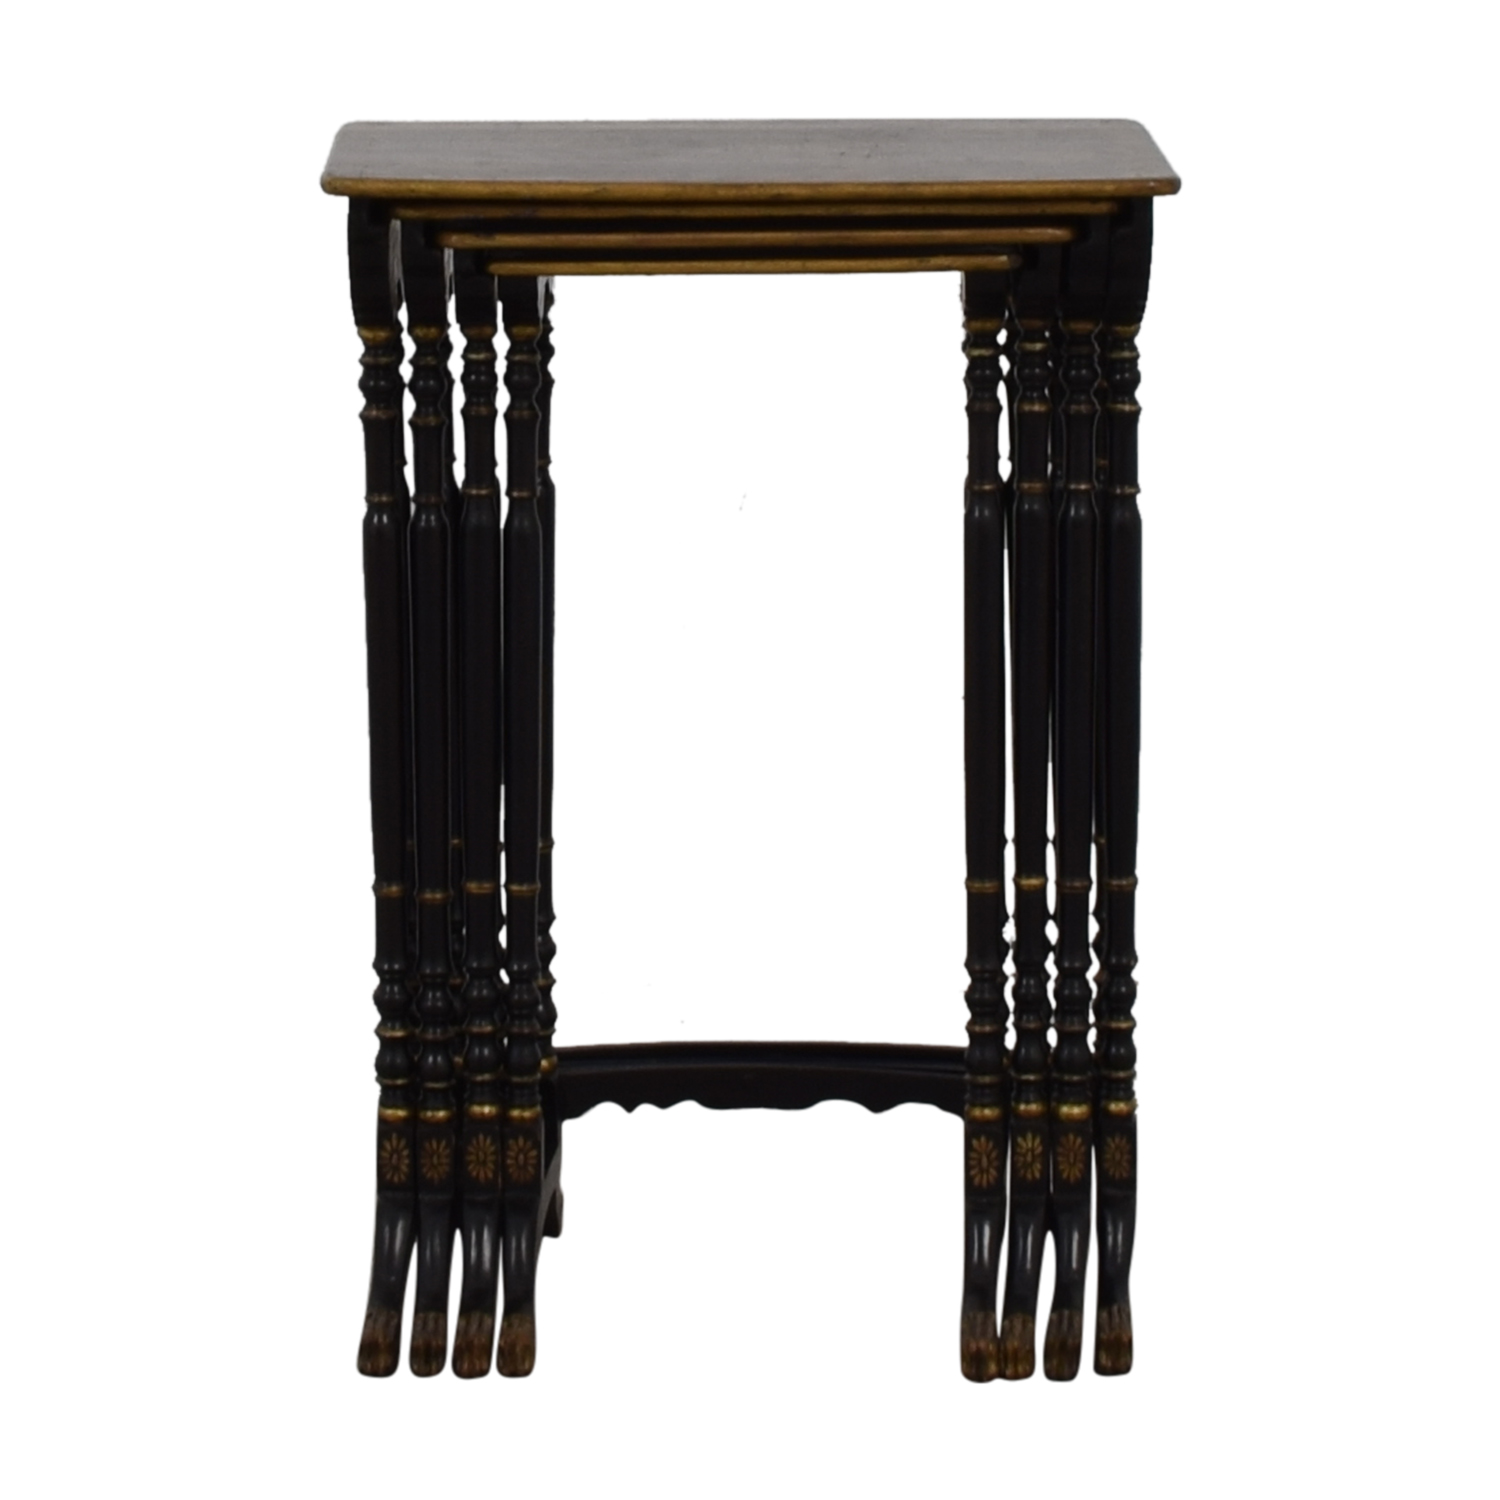 shop  Antique Asian Nesting Tables online